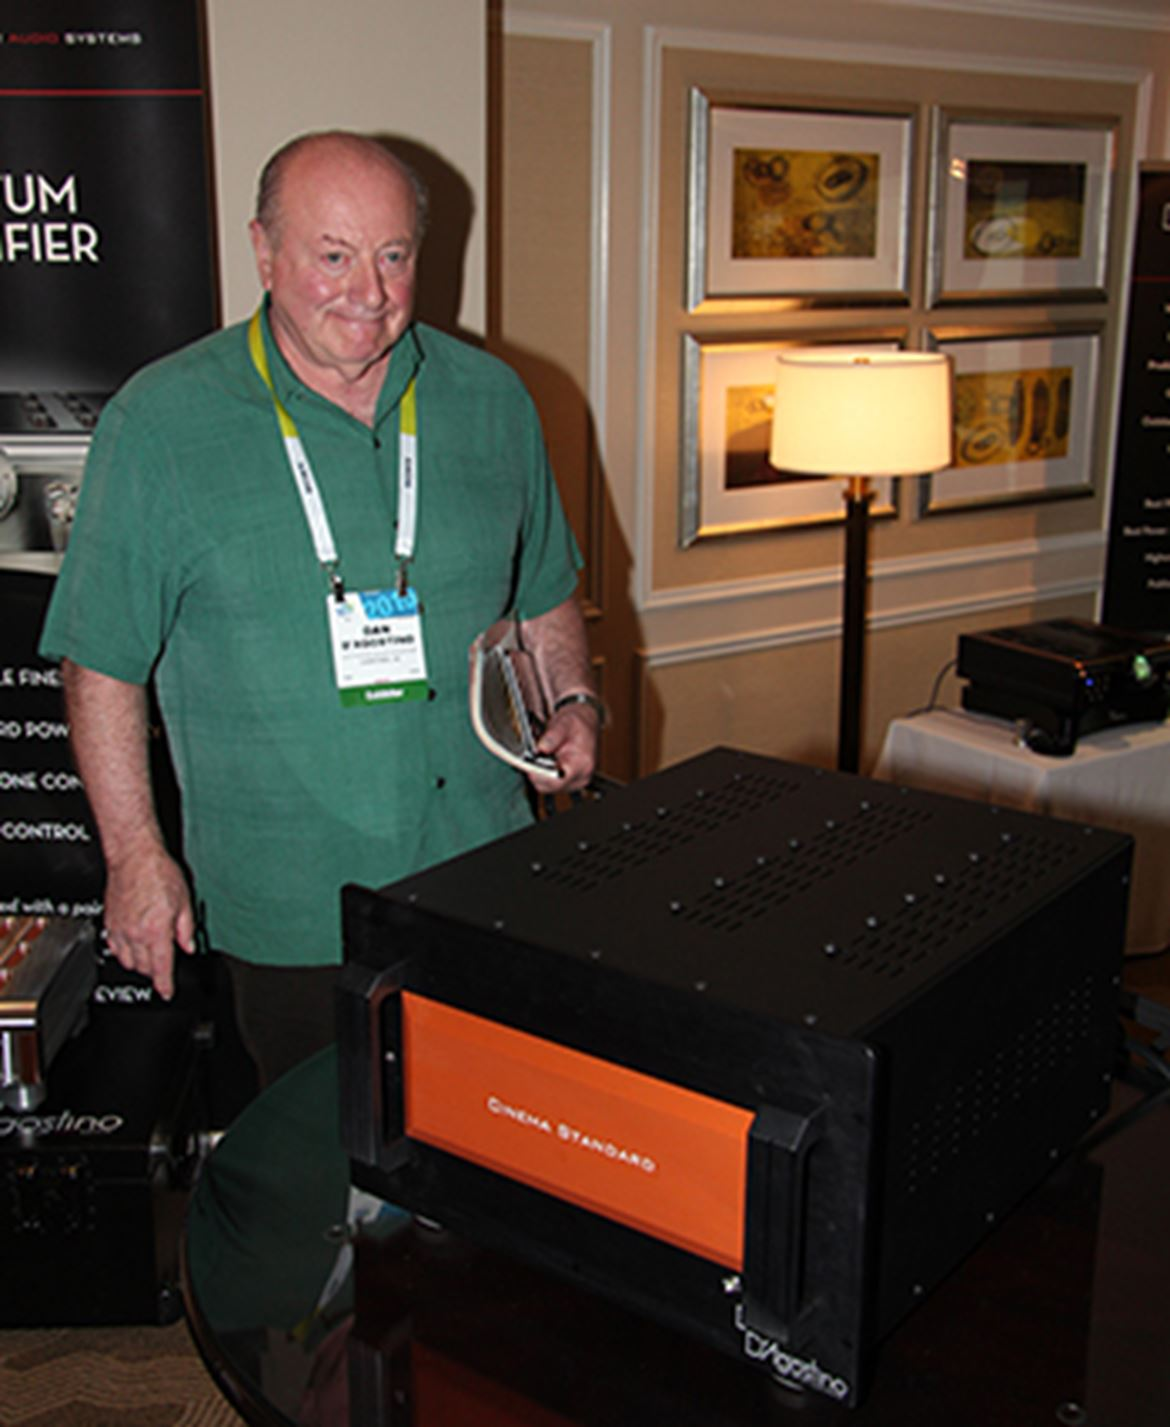 Dan D'Agostino, the man himself, looking happy with the new Cinema Standard Amplifier Series